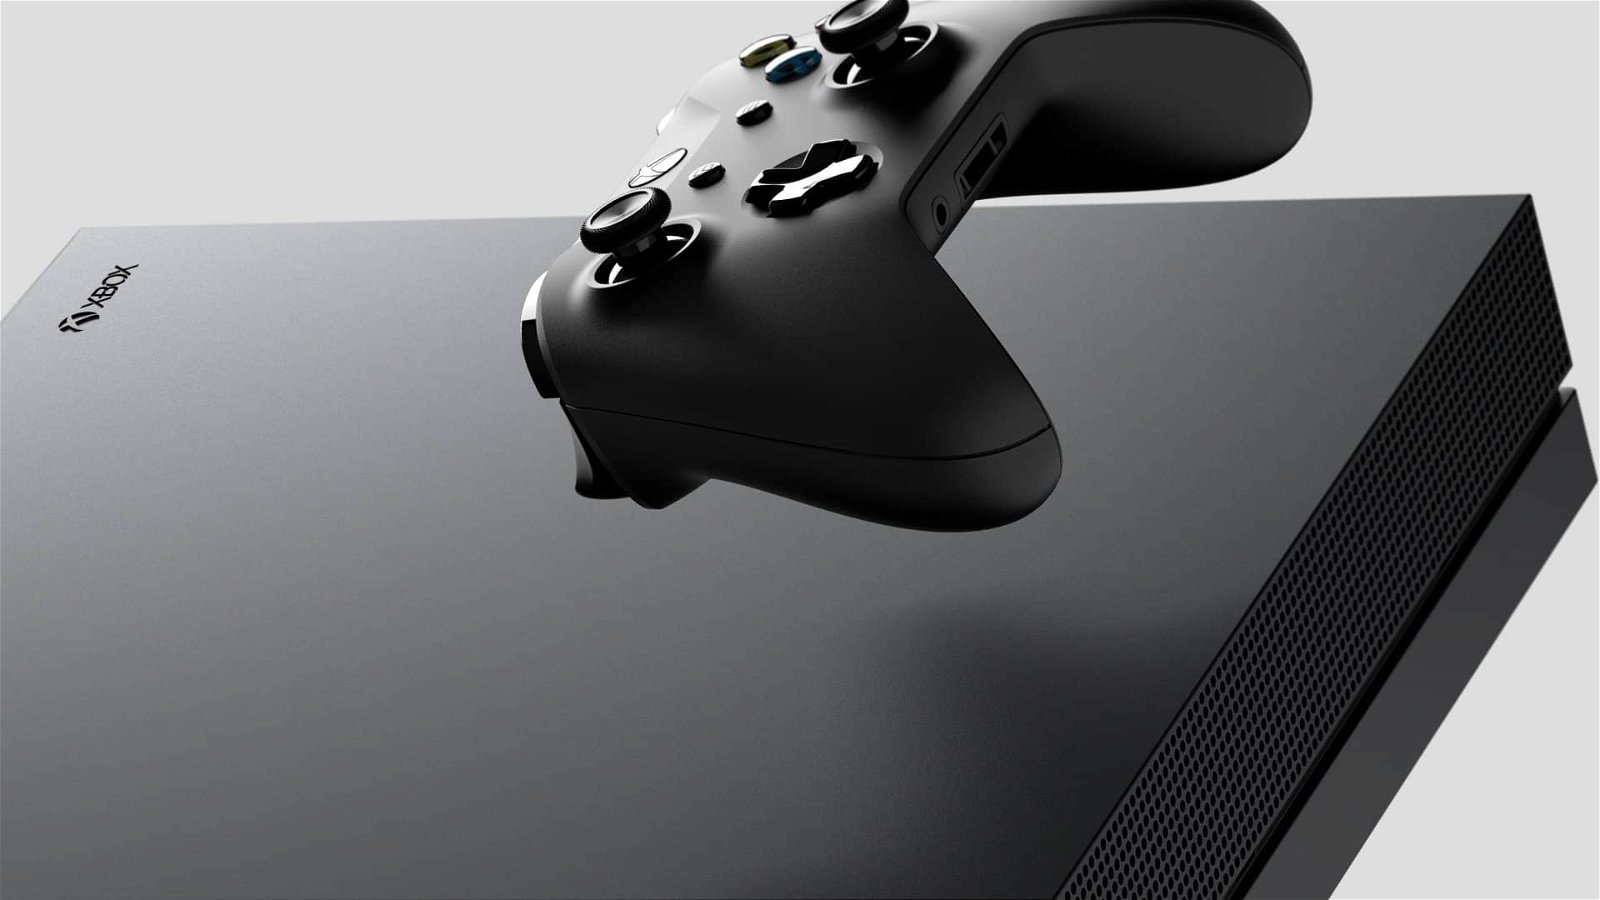 Microsoft Potentially Releasing Two New Xbox Consoles in 2020 2